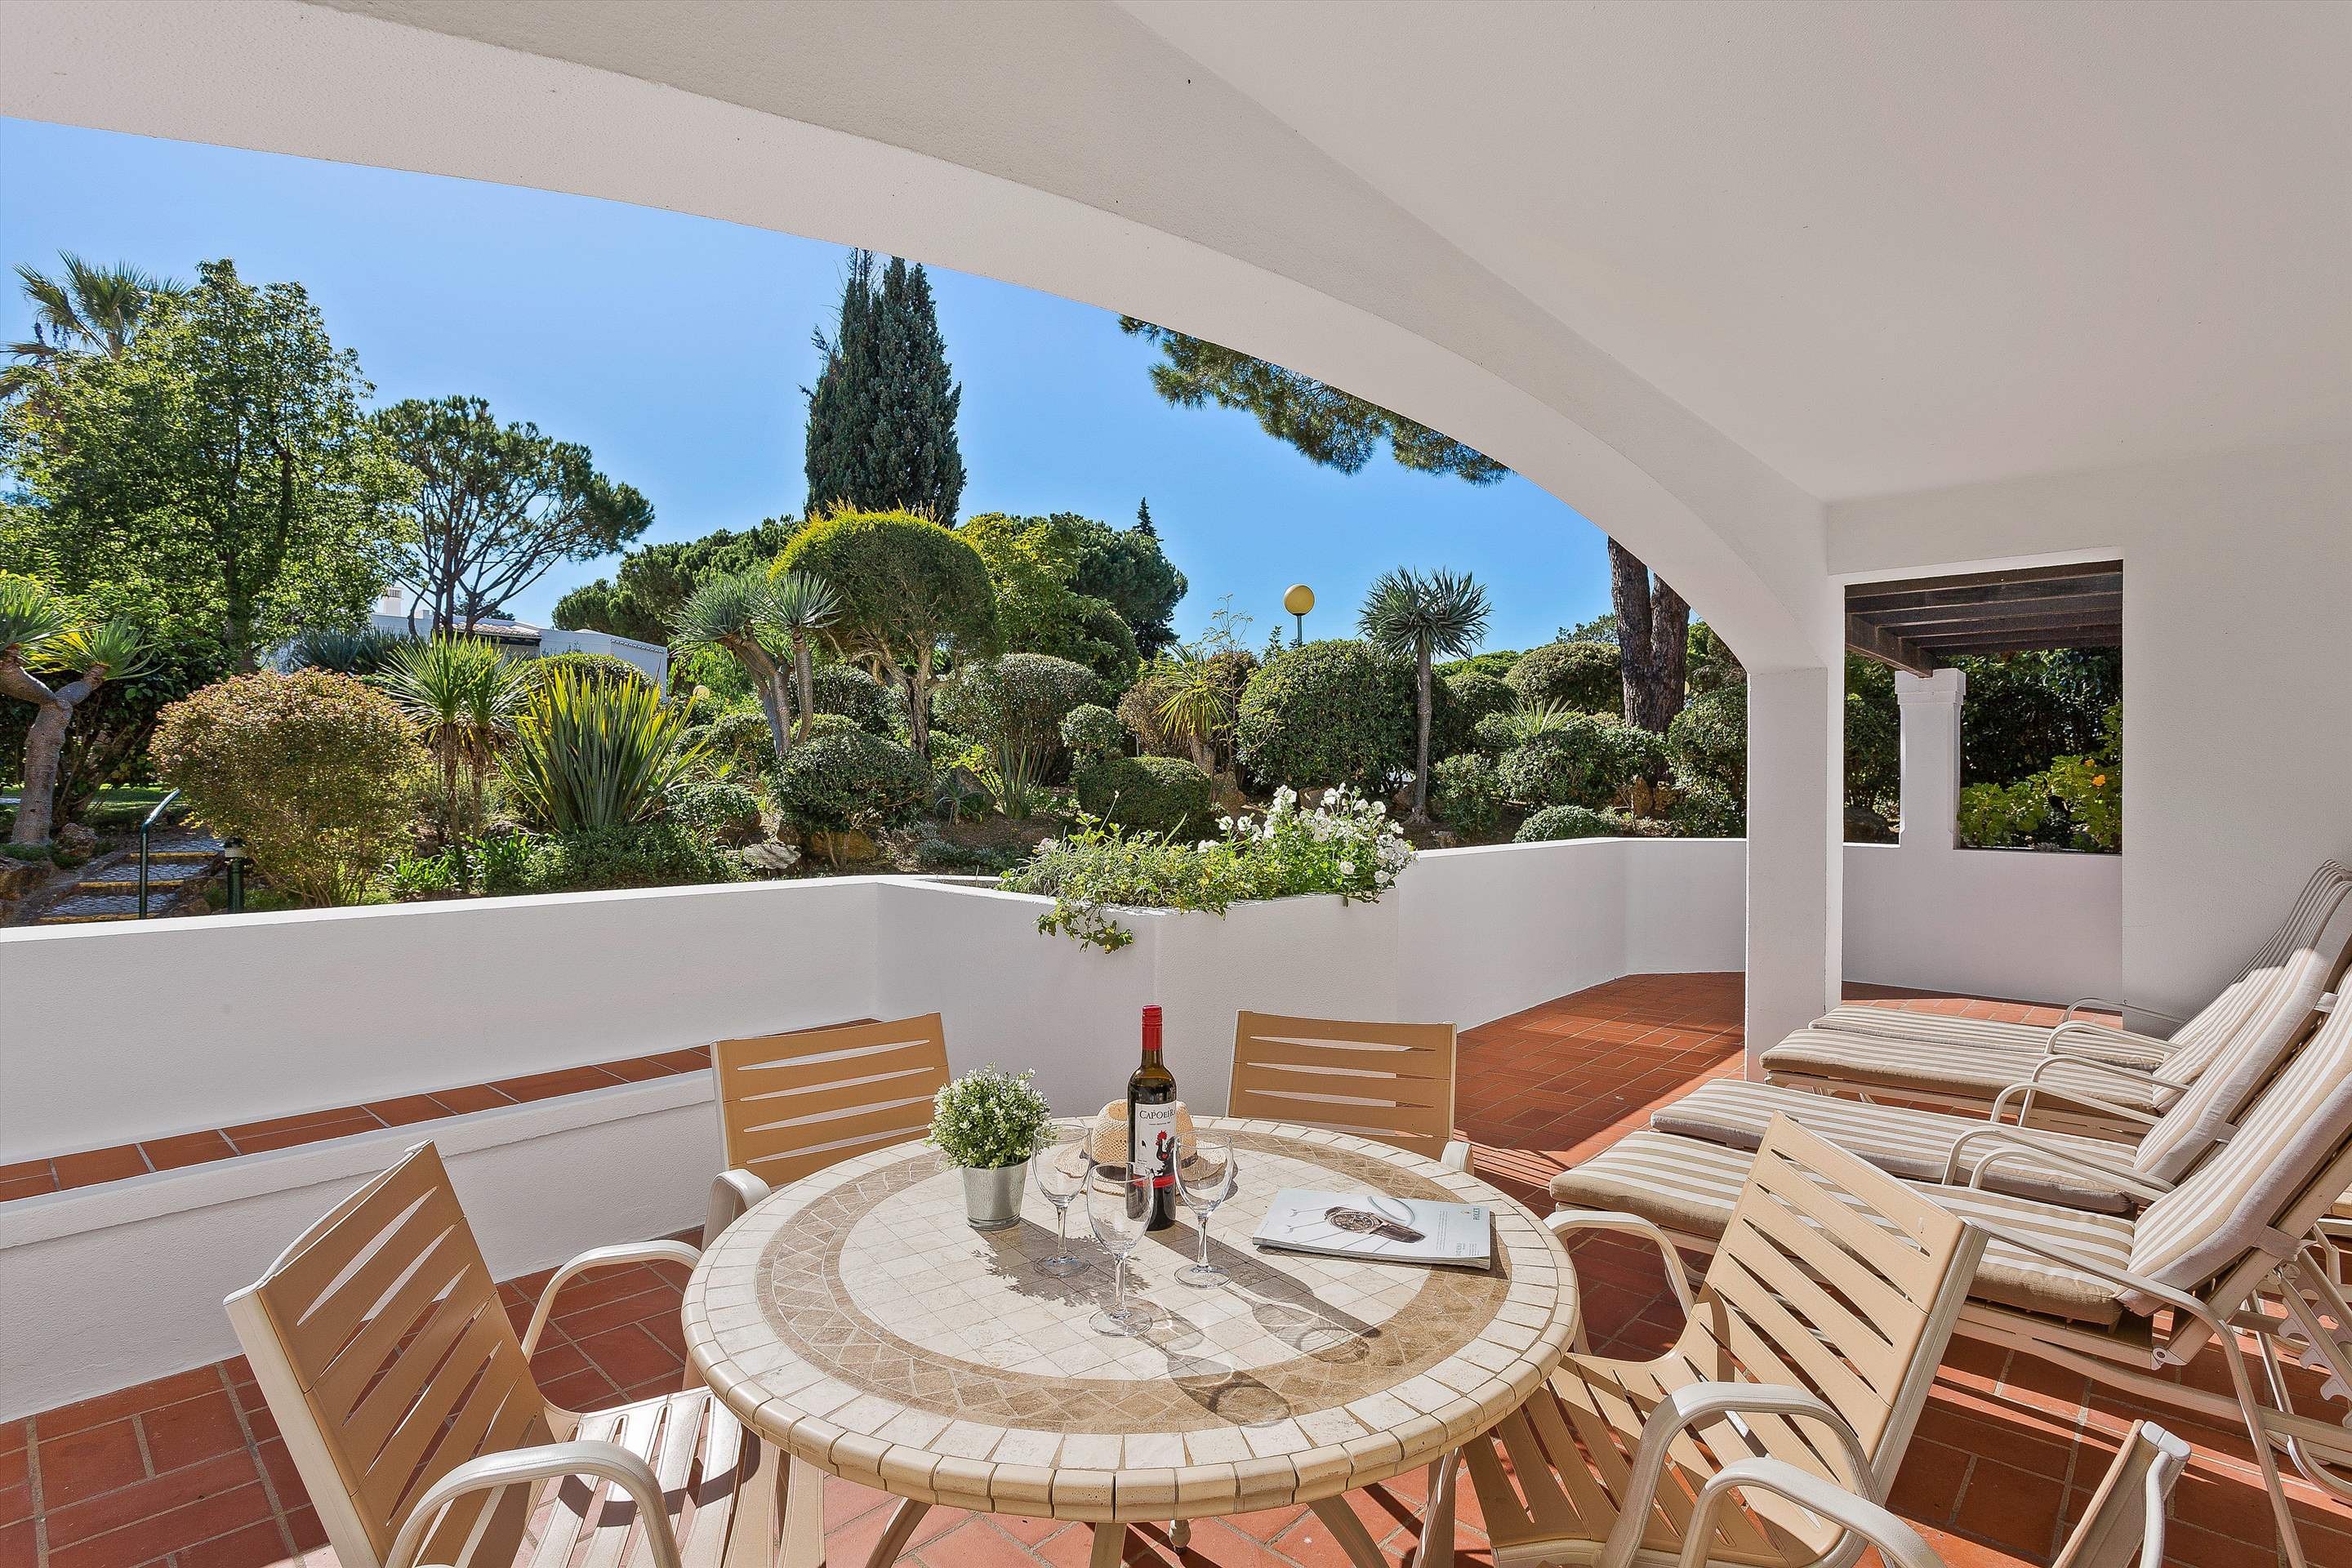 Four Seasons Country Club 2 bed, Superior - Thursday Arrival, 2 bedroom apartment in Four Seasons Country Club, Algarve Photo #2